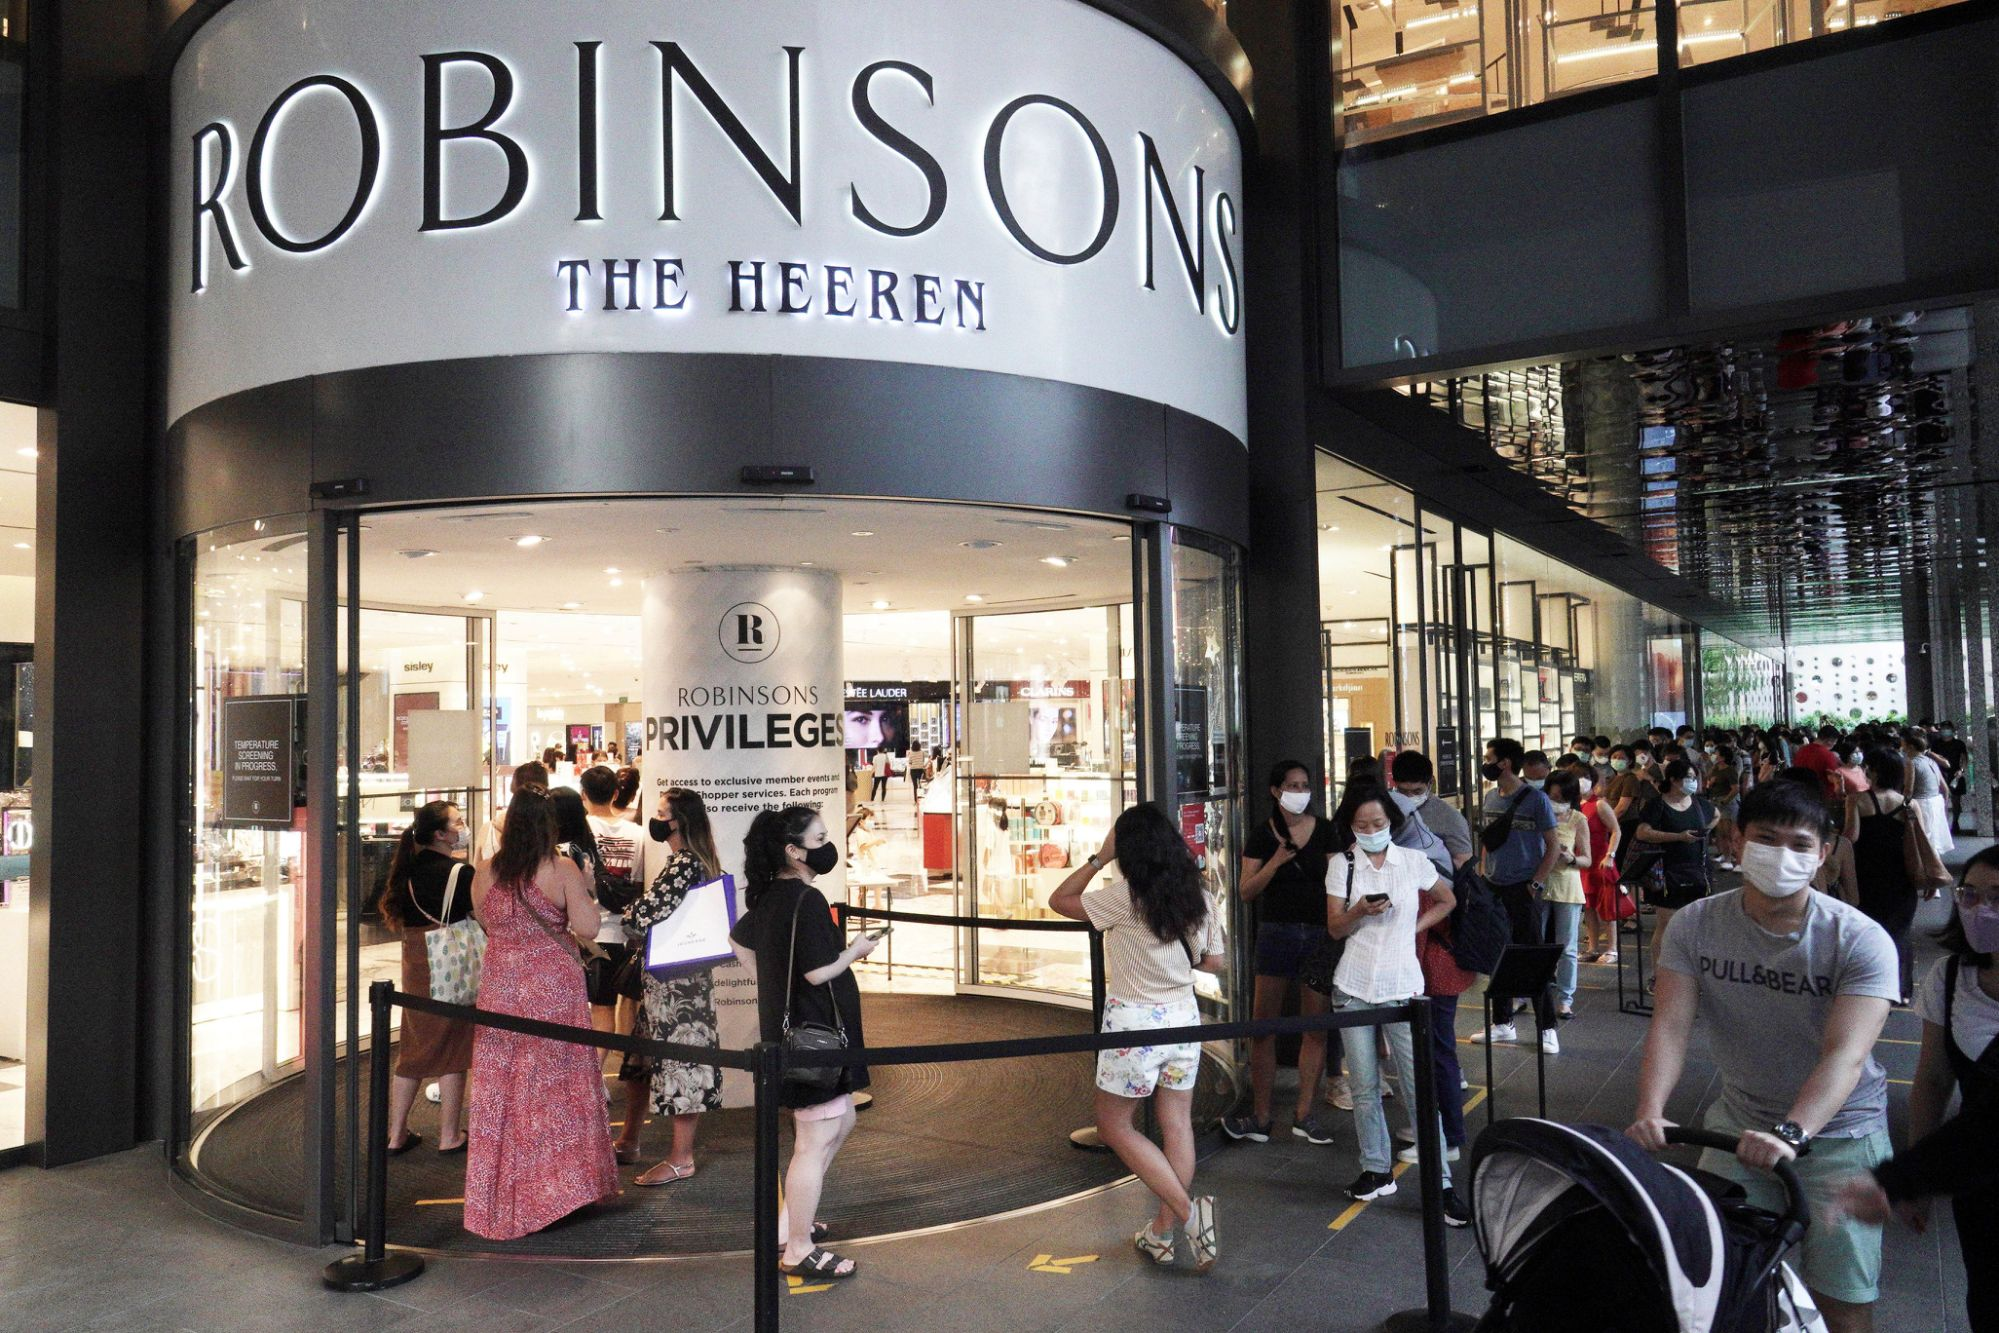 Outside Robinsons at The Heeren, which is now holding a closing sale. (Photo credit: Then Chih Wey/Xinhua via Getty)